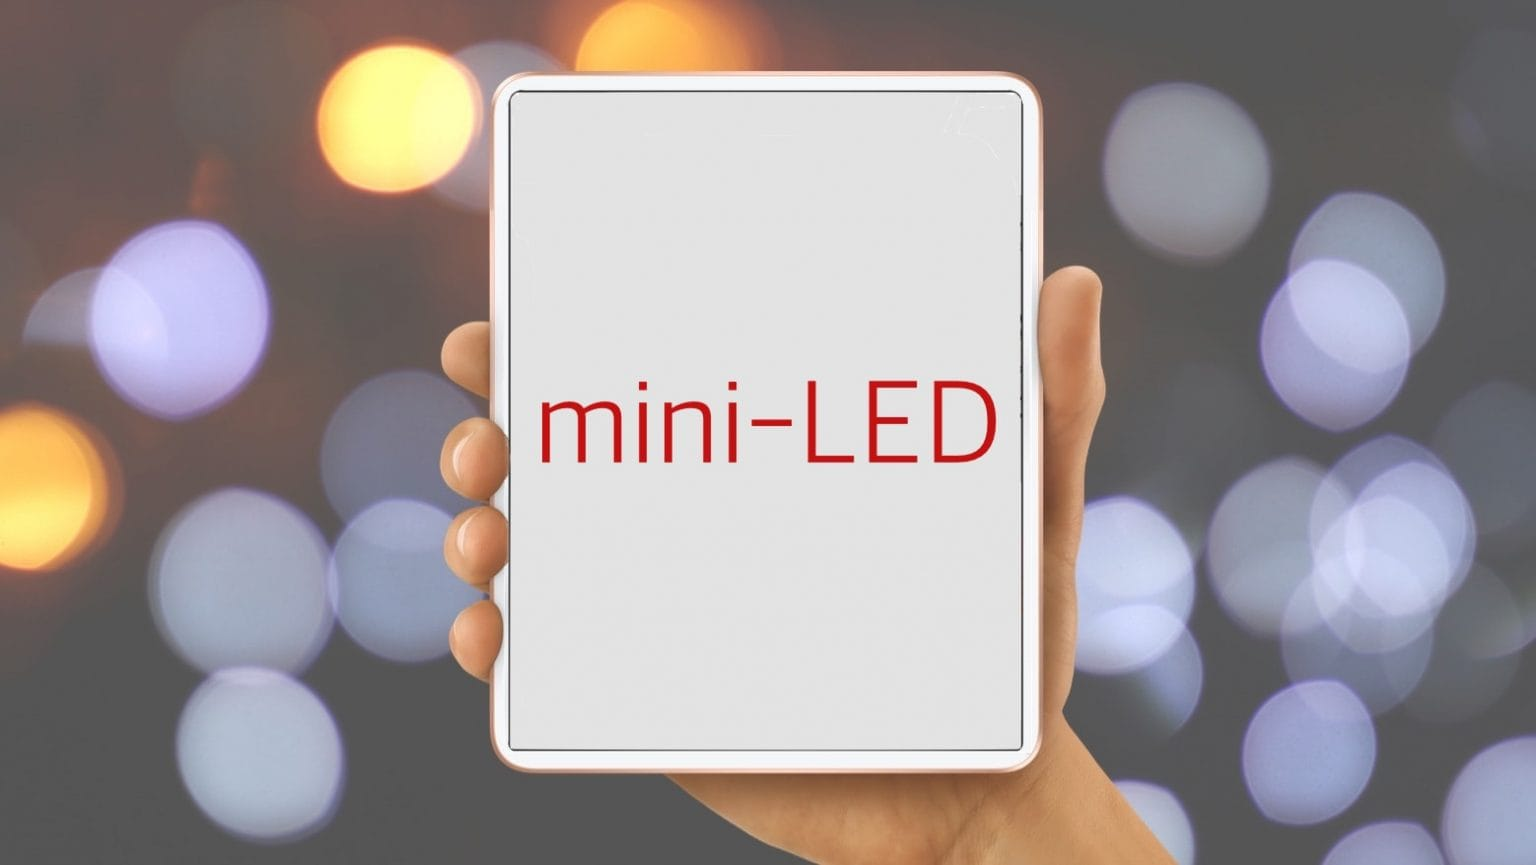 Gorgeous mini-LED display could add luster to next iPad mini